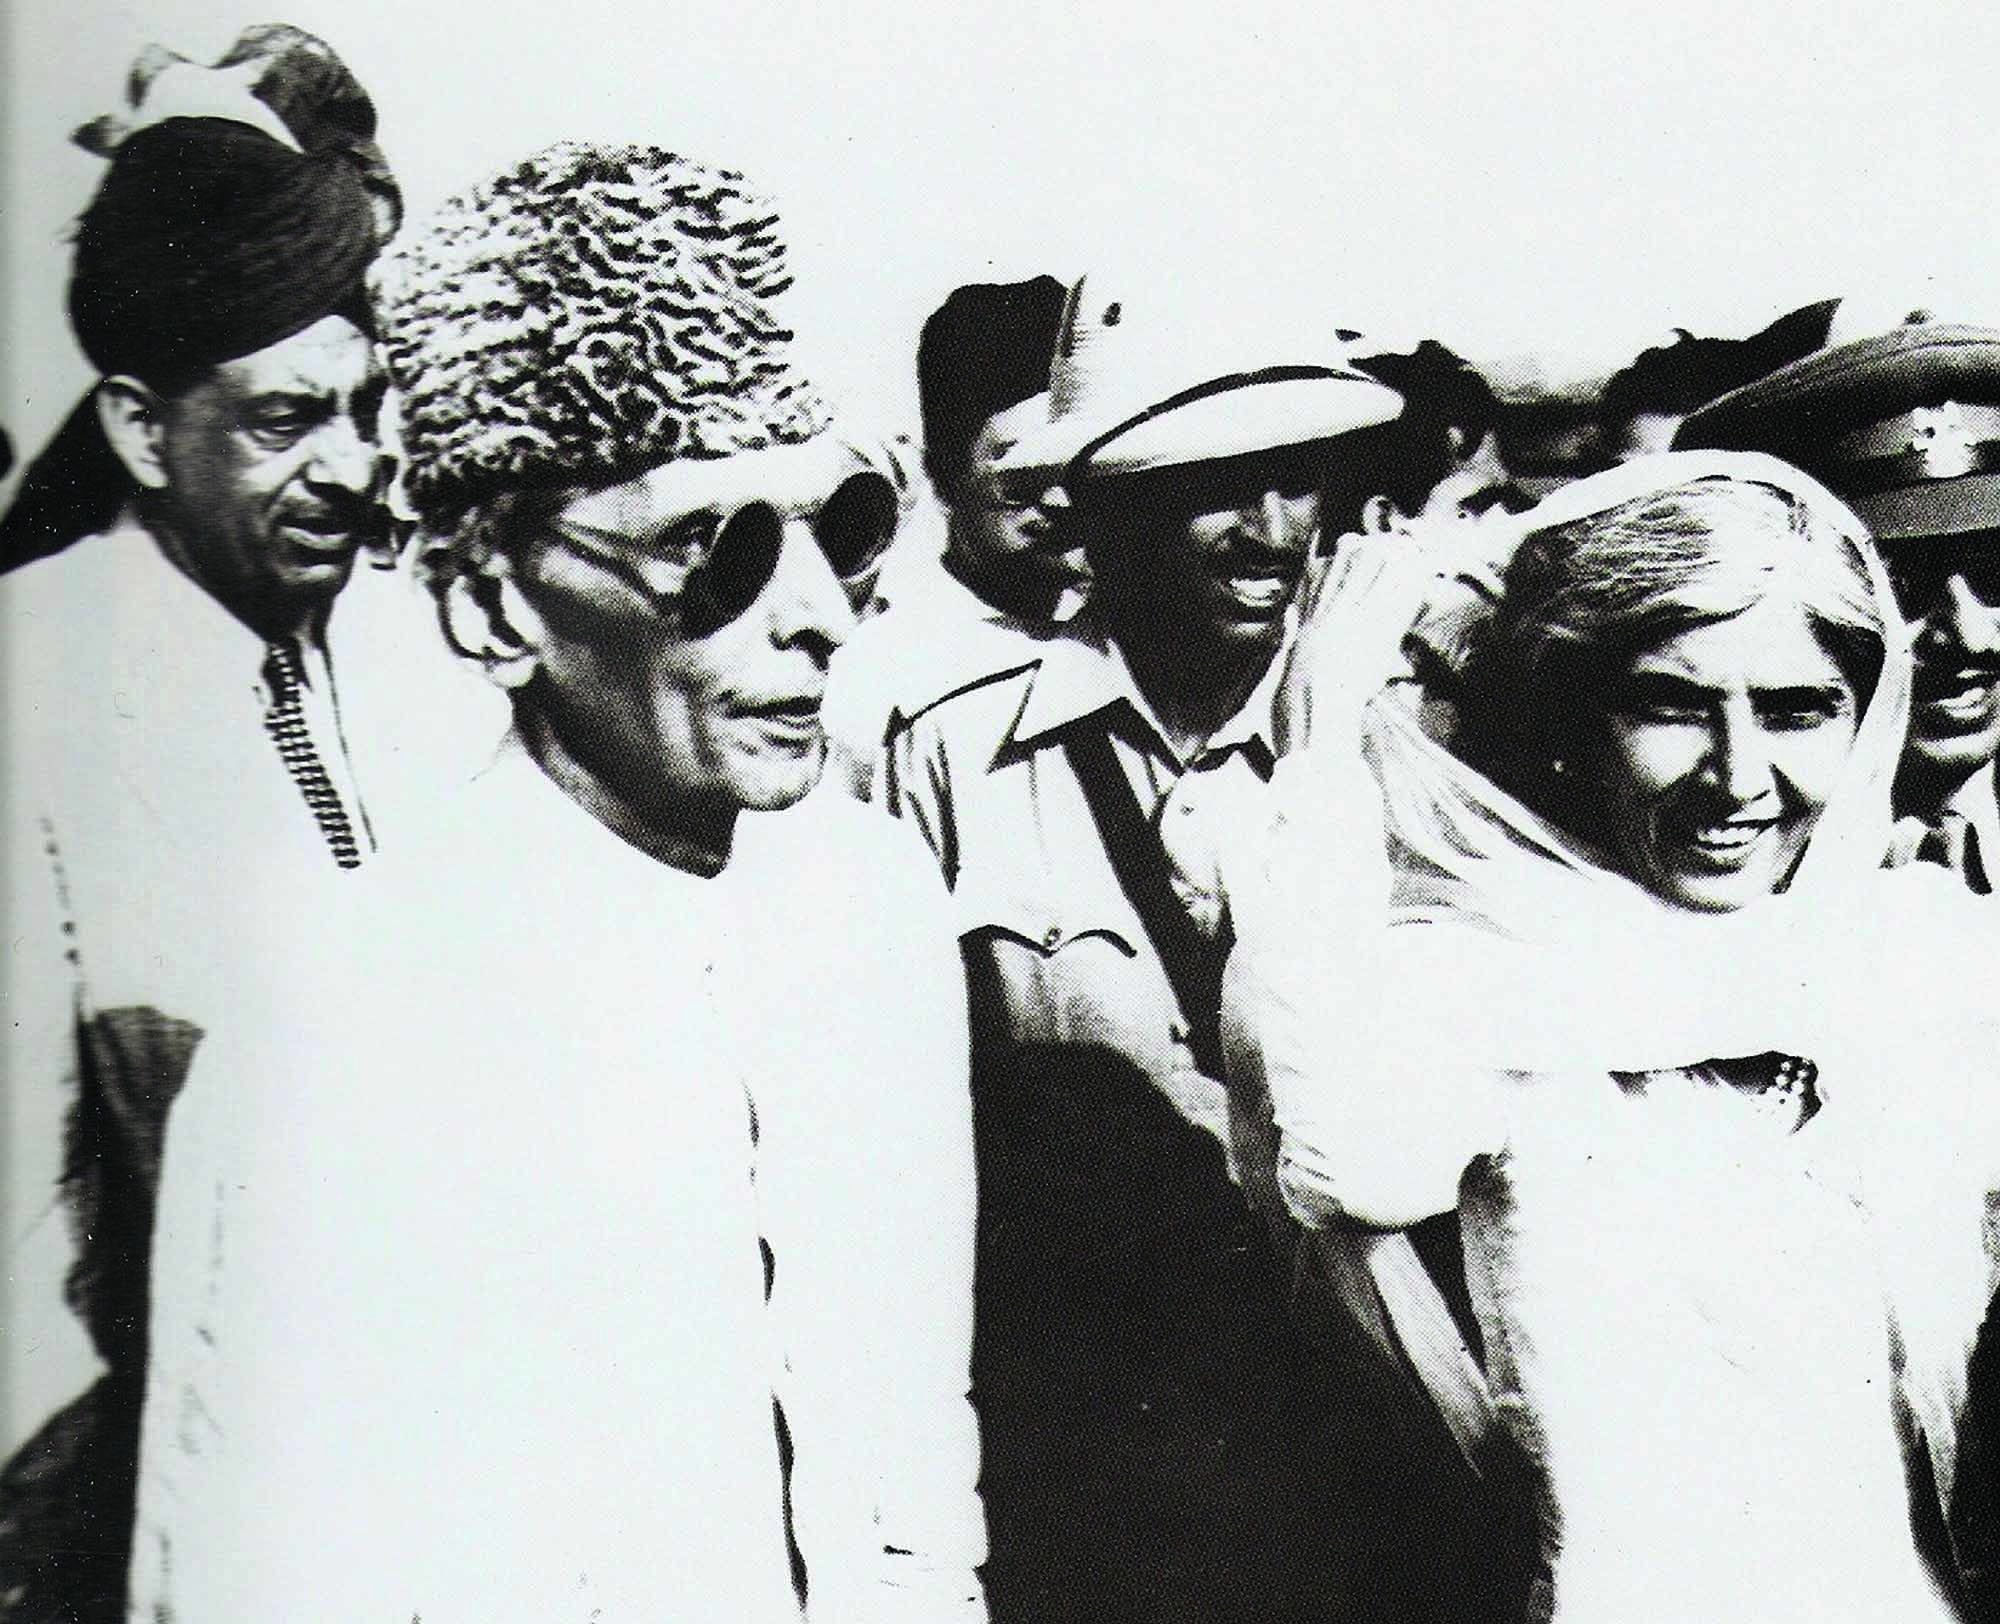 APPROACHING INDEPENDENCE: Mr Jinnah and Miss Fatima Jinnah arrived in Karachi on August 7, 1947. A week later, Pakistan came into being after years of struggle on August 14, 1947.| Photo: PID.